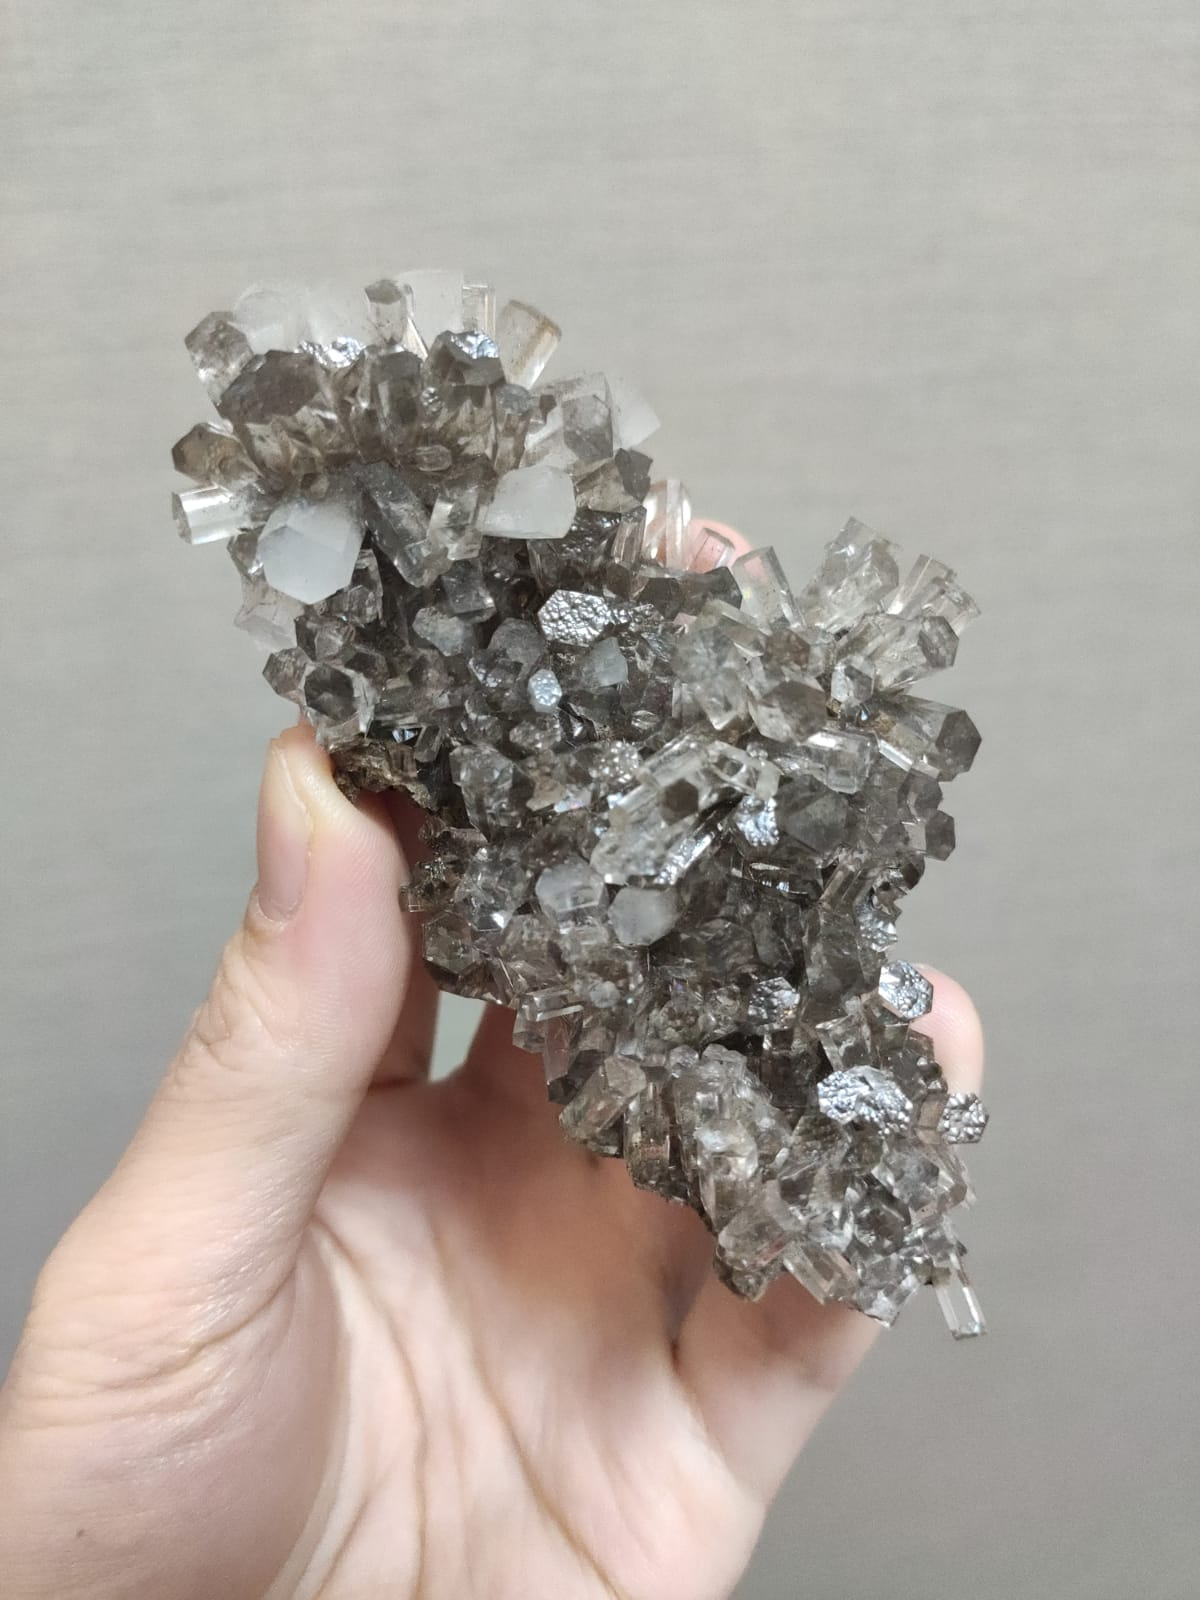 News – This is a new mineral species from the Mainland China